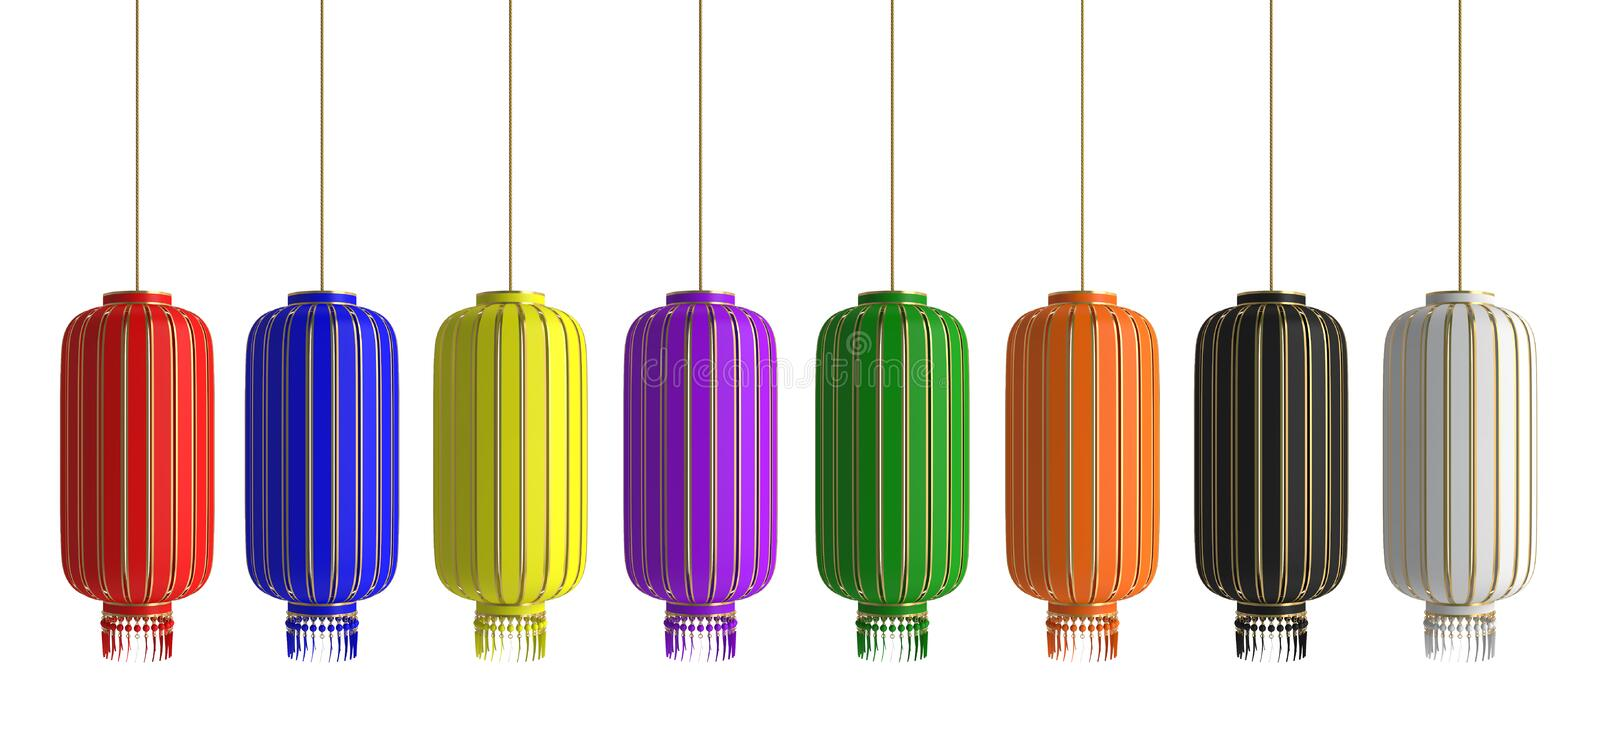 Set collection of various red green yellow blue violet orange black white chinese lantern lampion isolate on white background. stock image